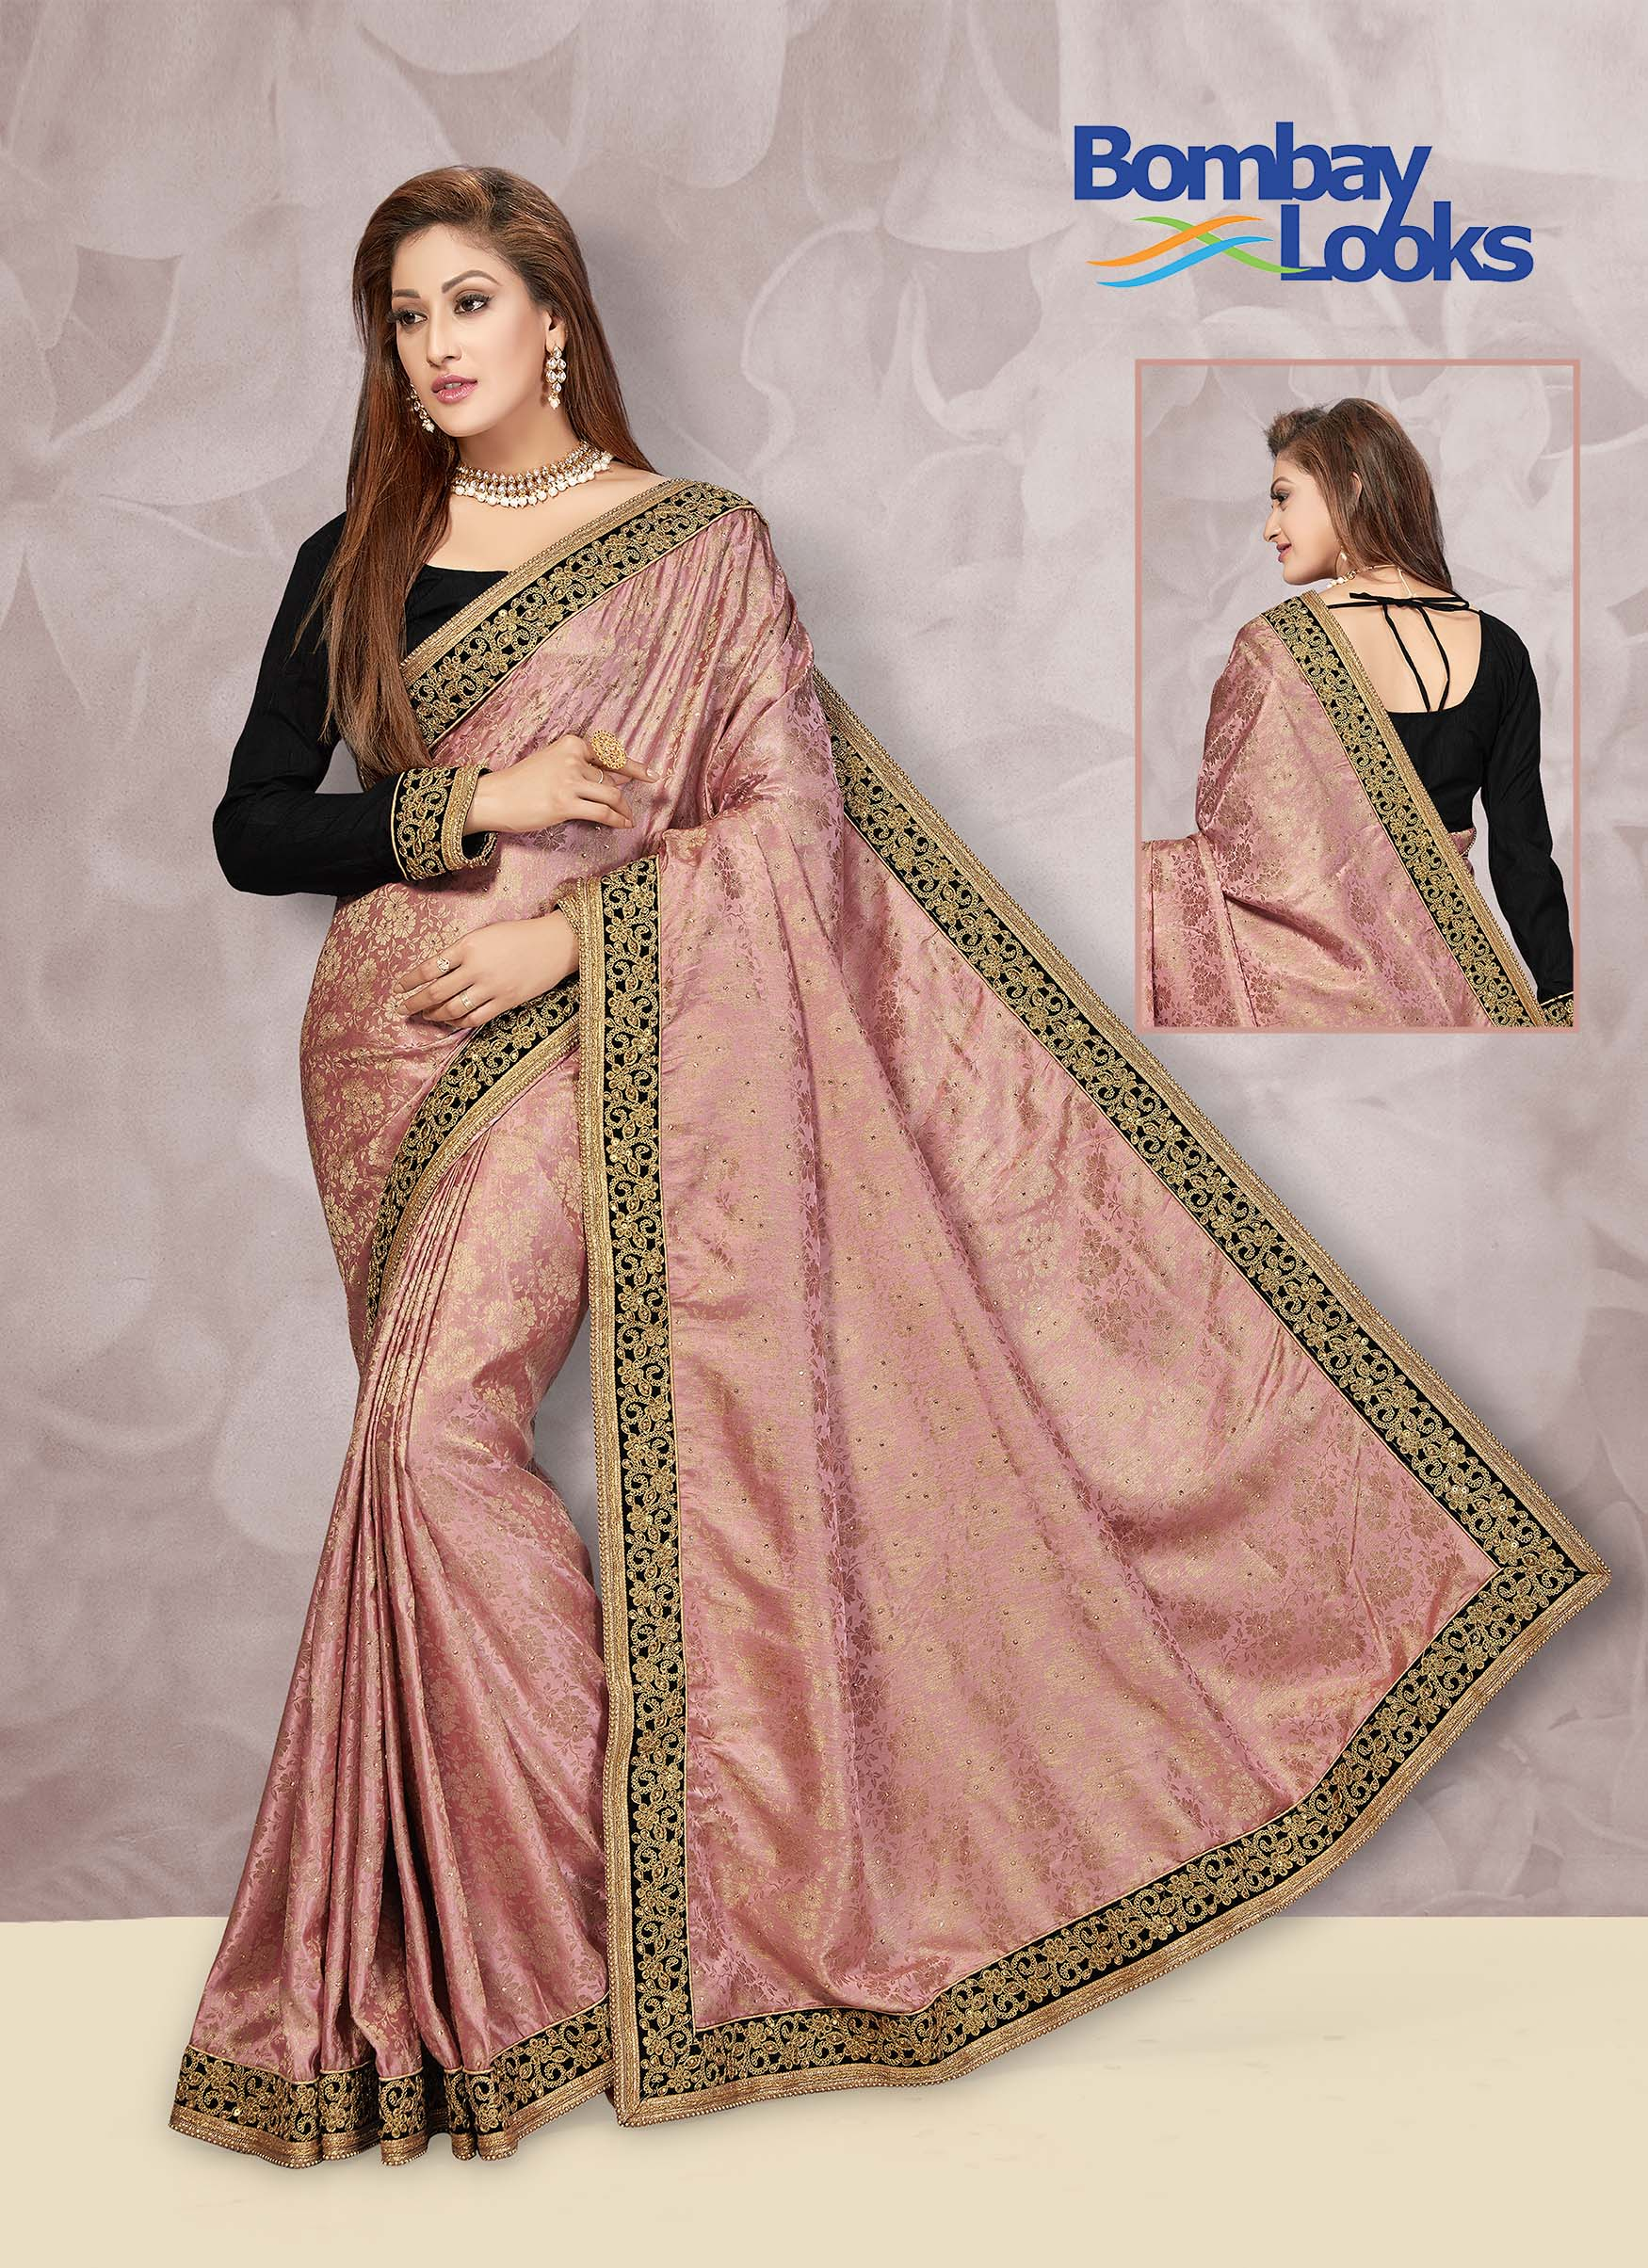 Jacquard saree in subtle rose pink with contrast black blouse